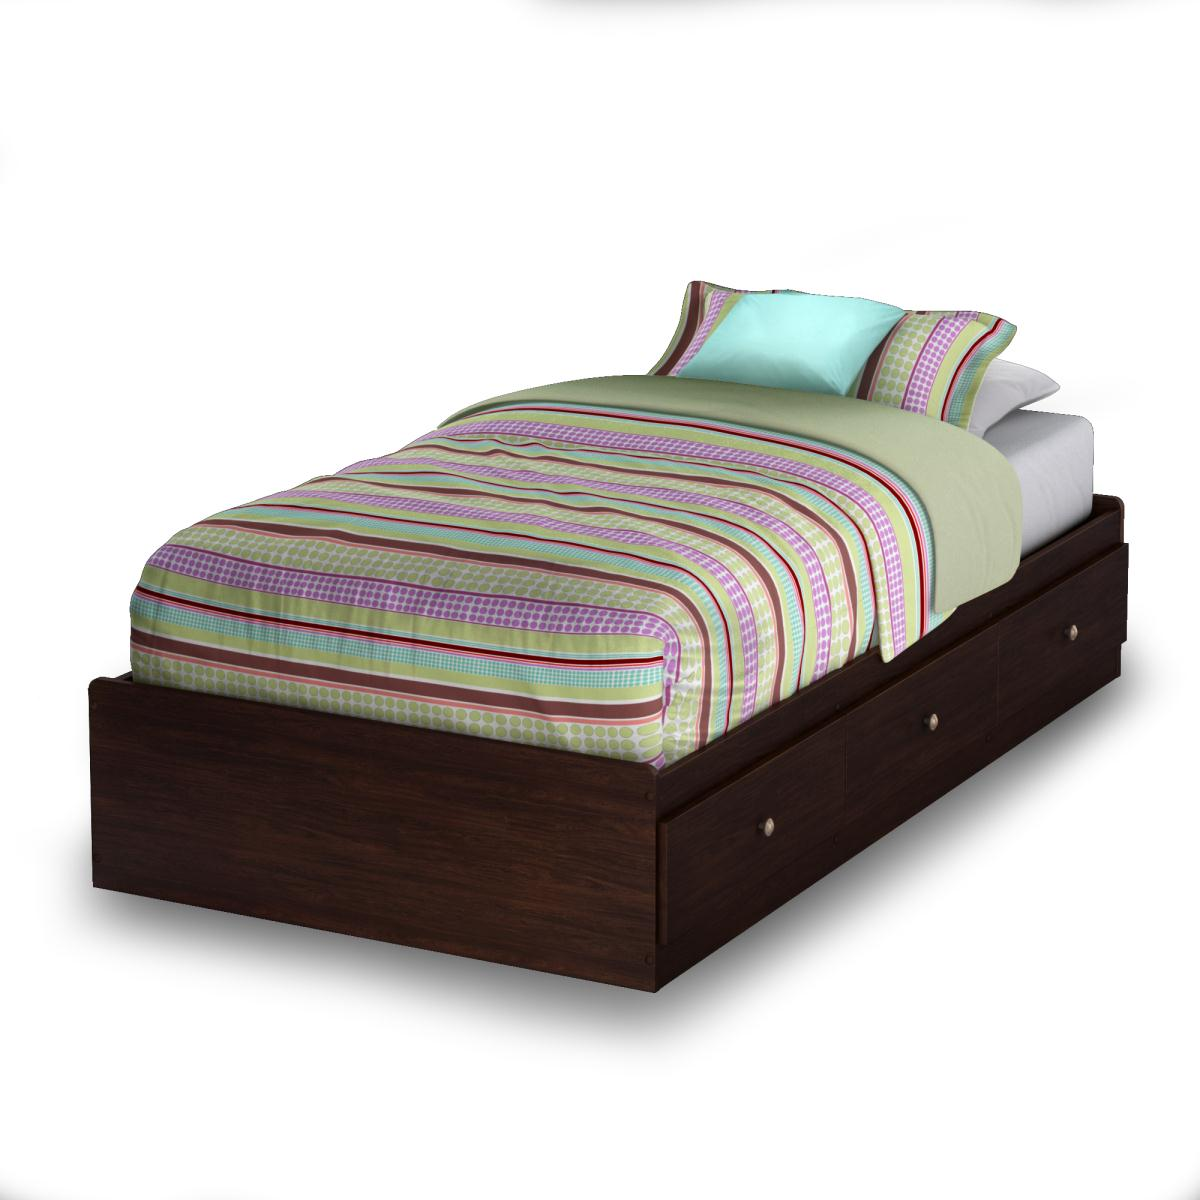 South Shore Willow Twin Mates Bed - Havana